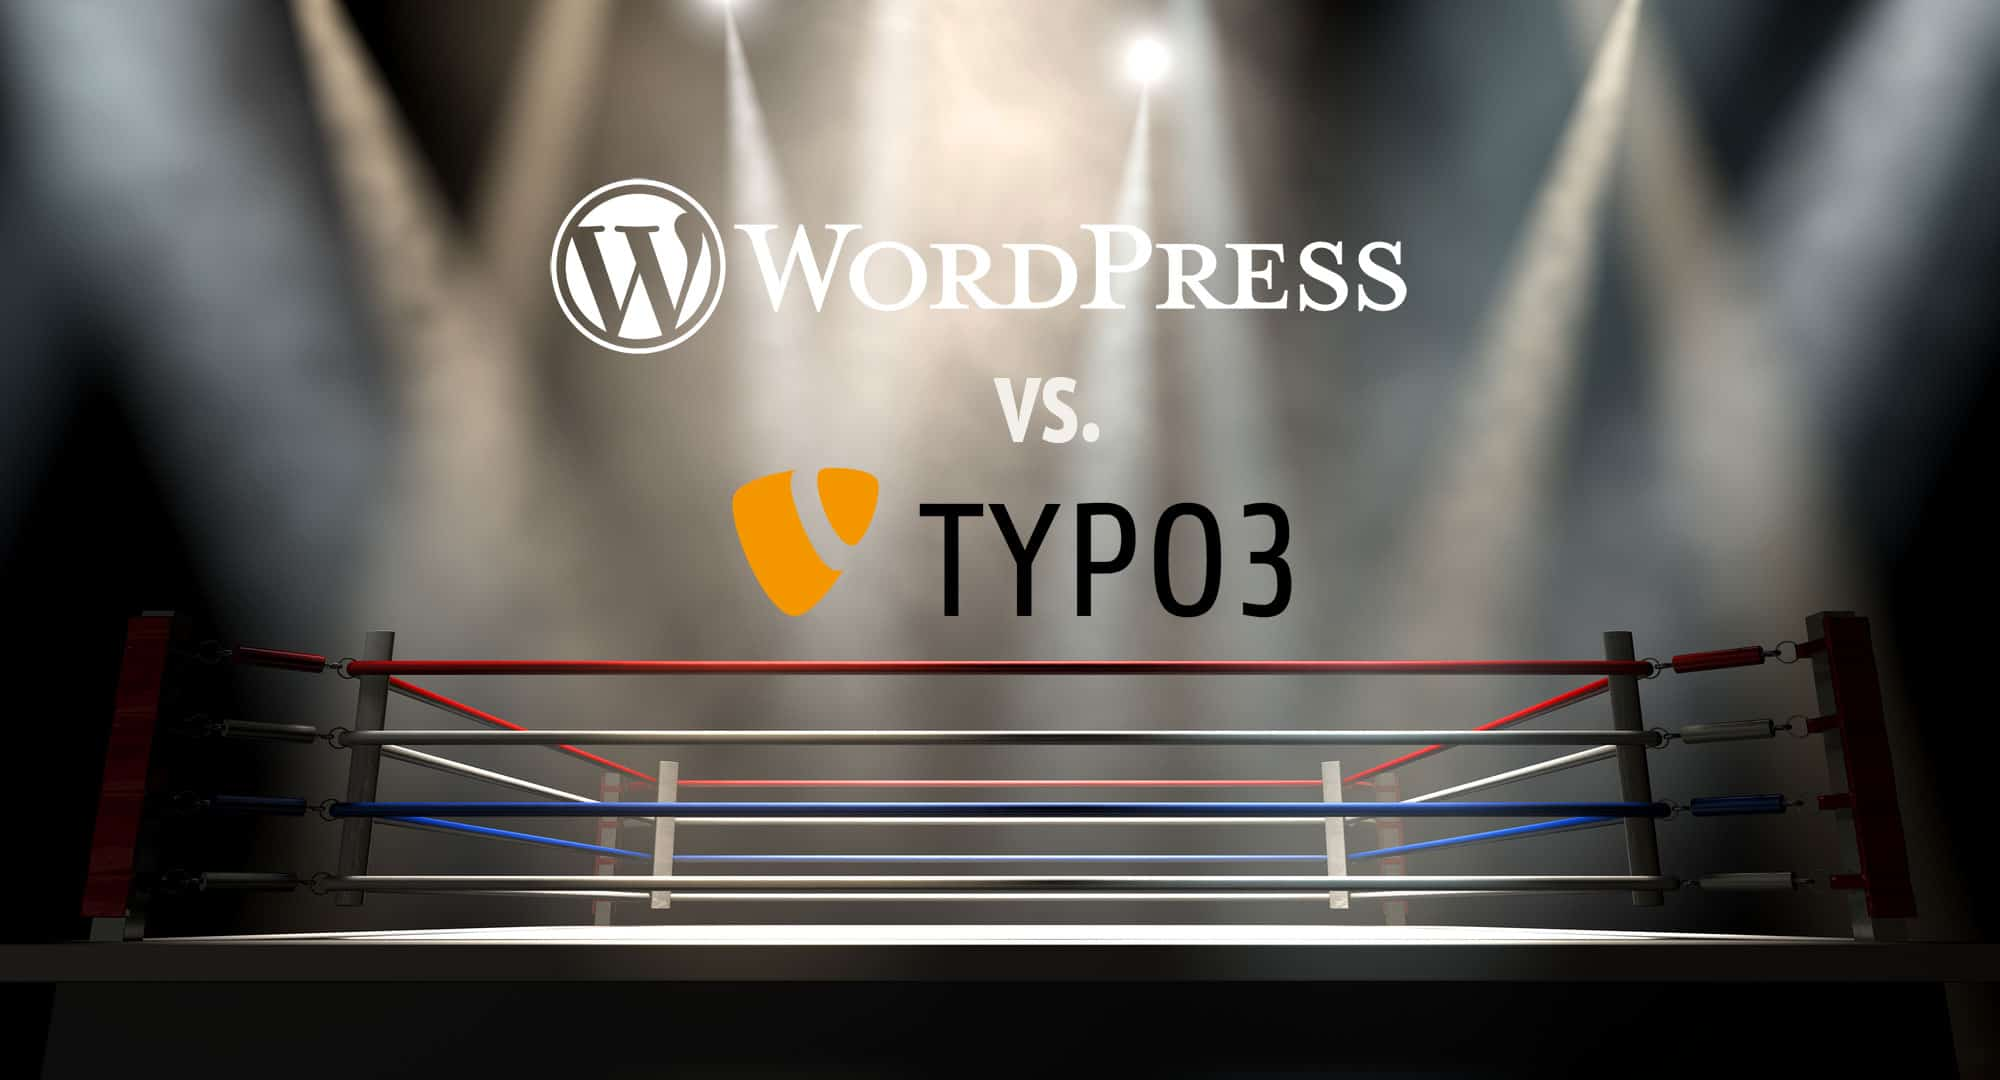 wordpress-vs-typo3